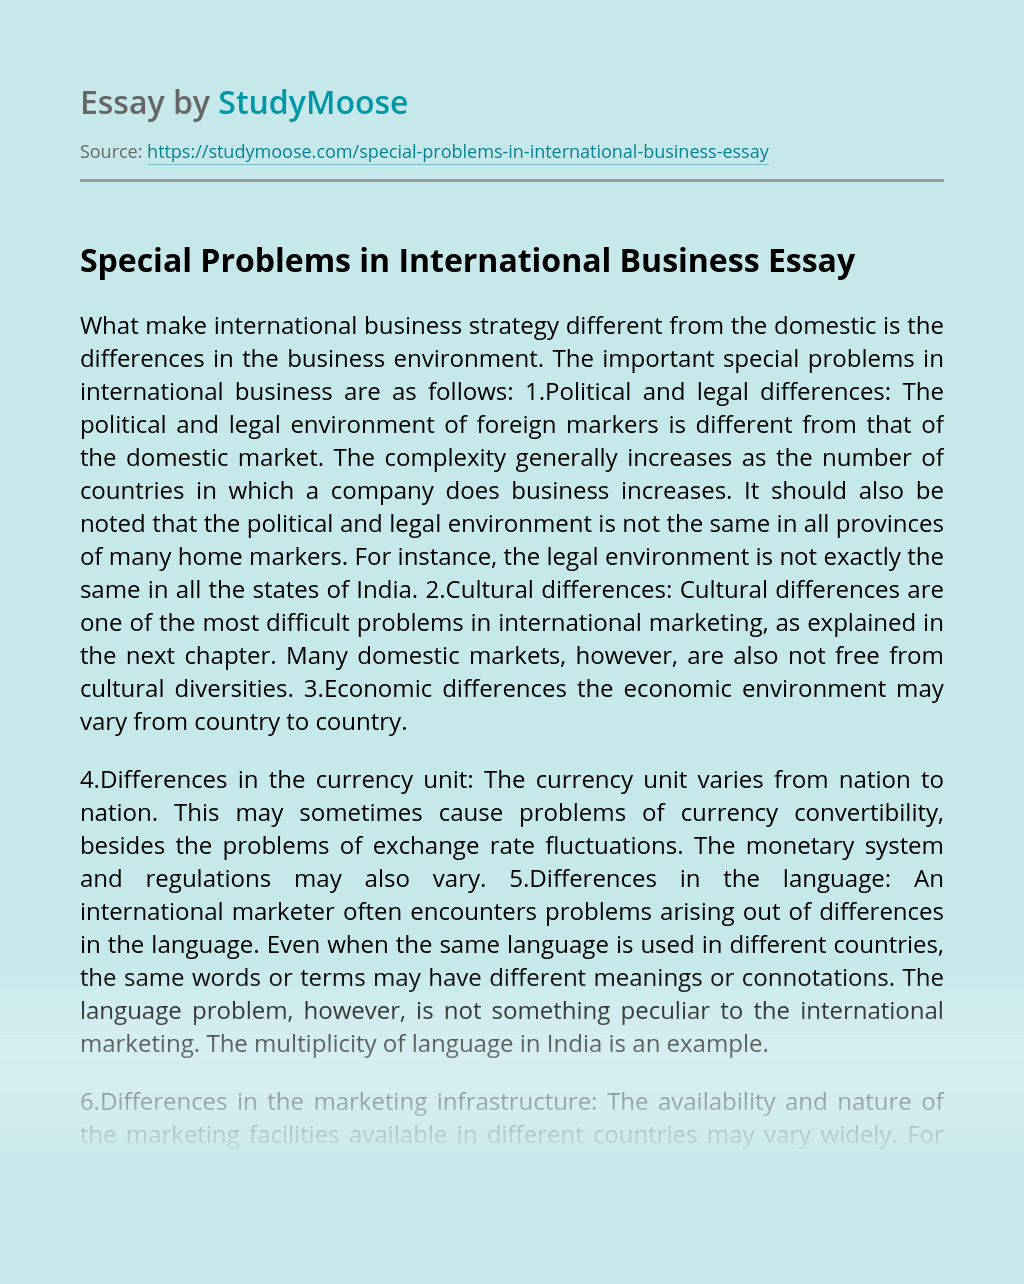 Special Problems in International Business